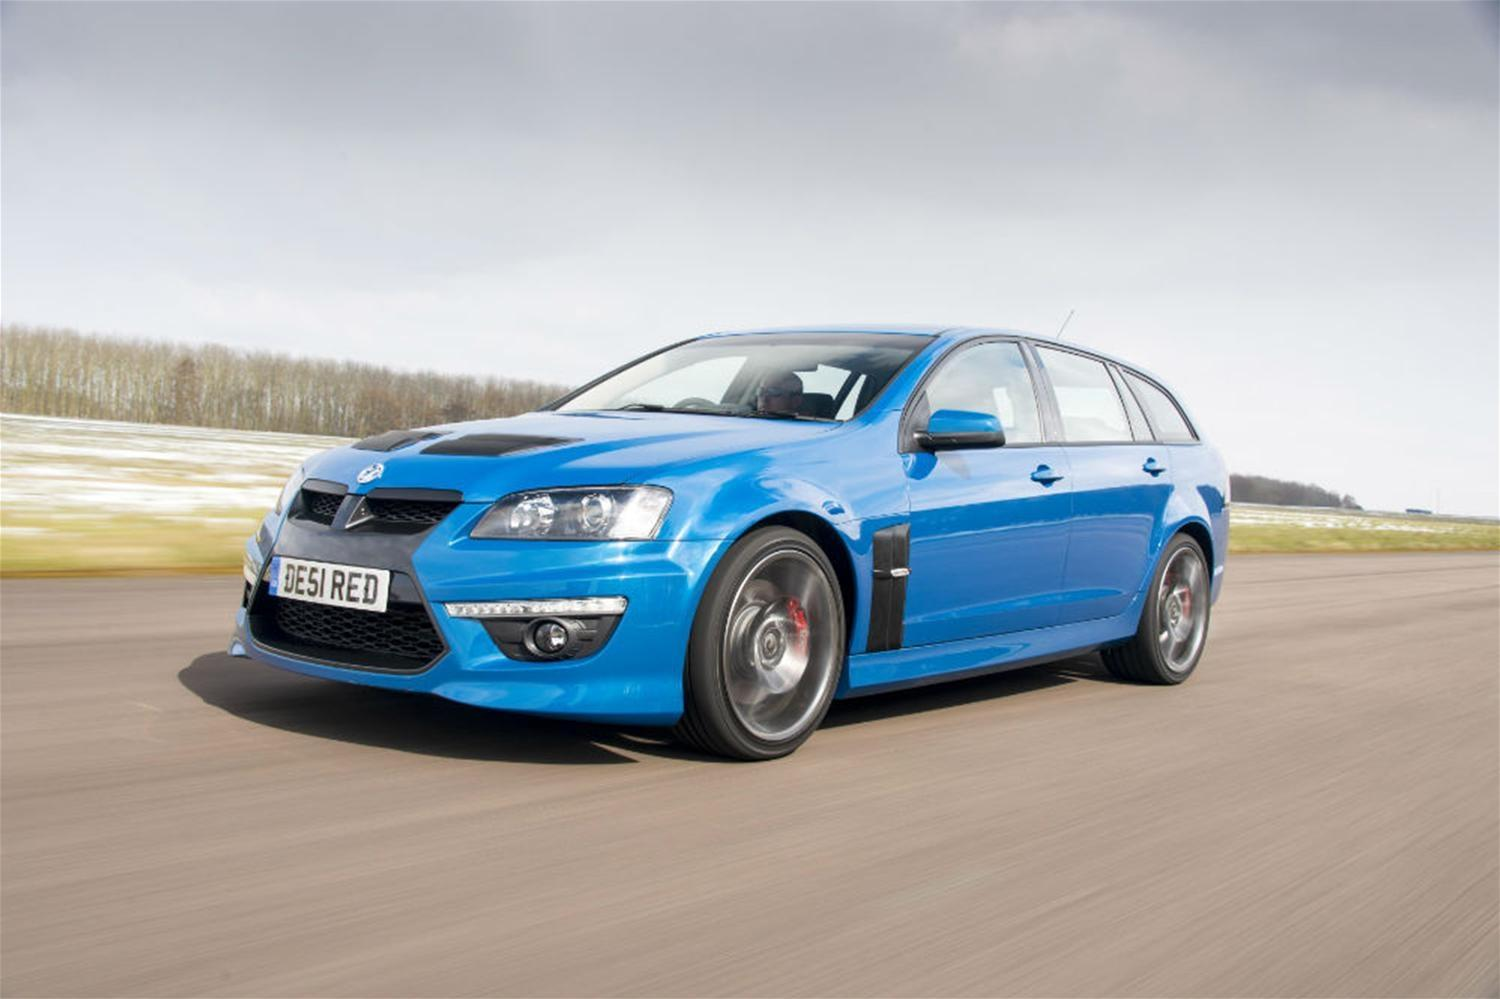 New VXR8 Tourer is Vauxhall's Fastest Estate